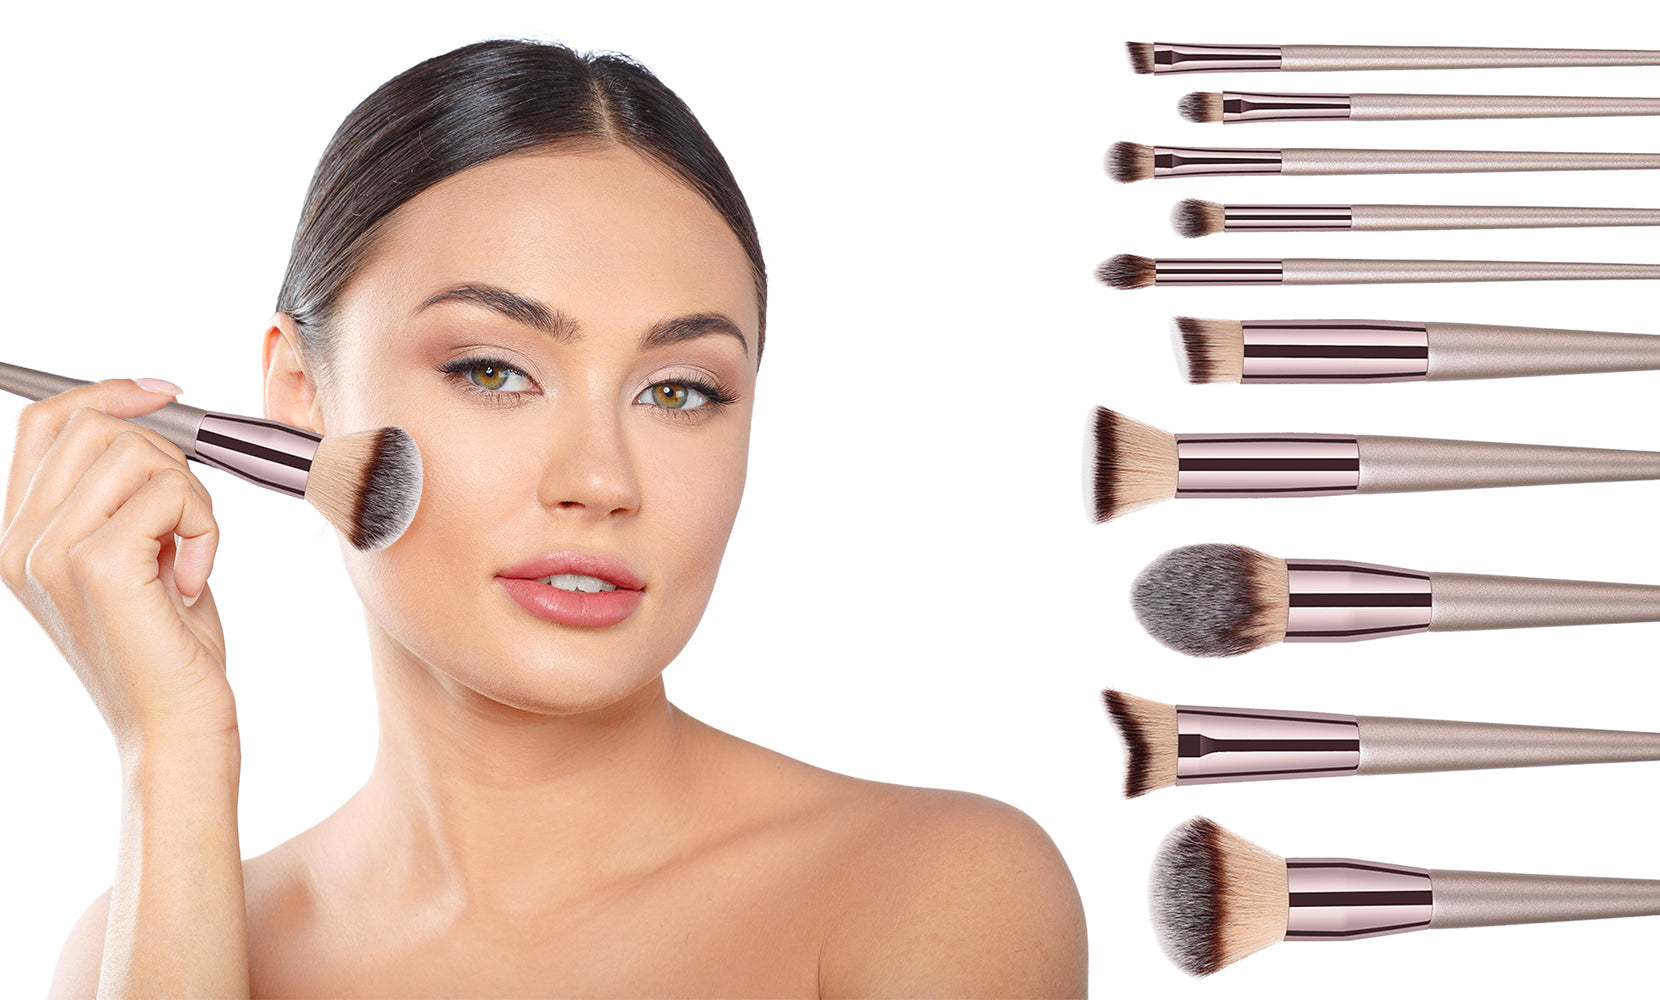 10-Piece: Glow Makeup Brushes